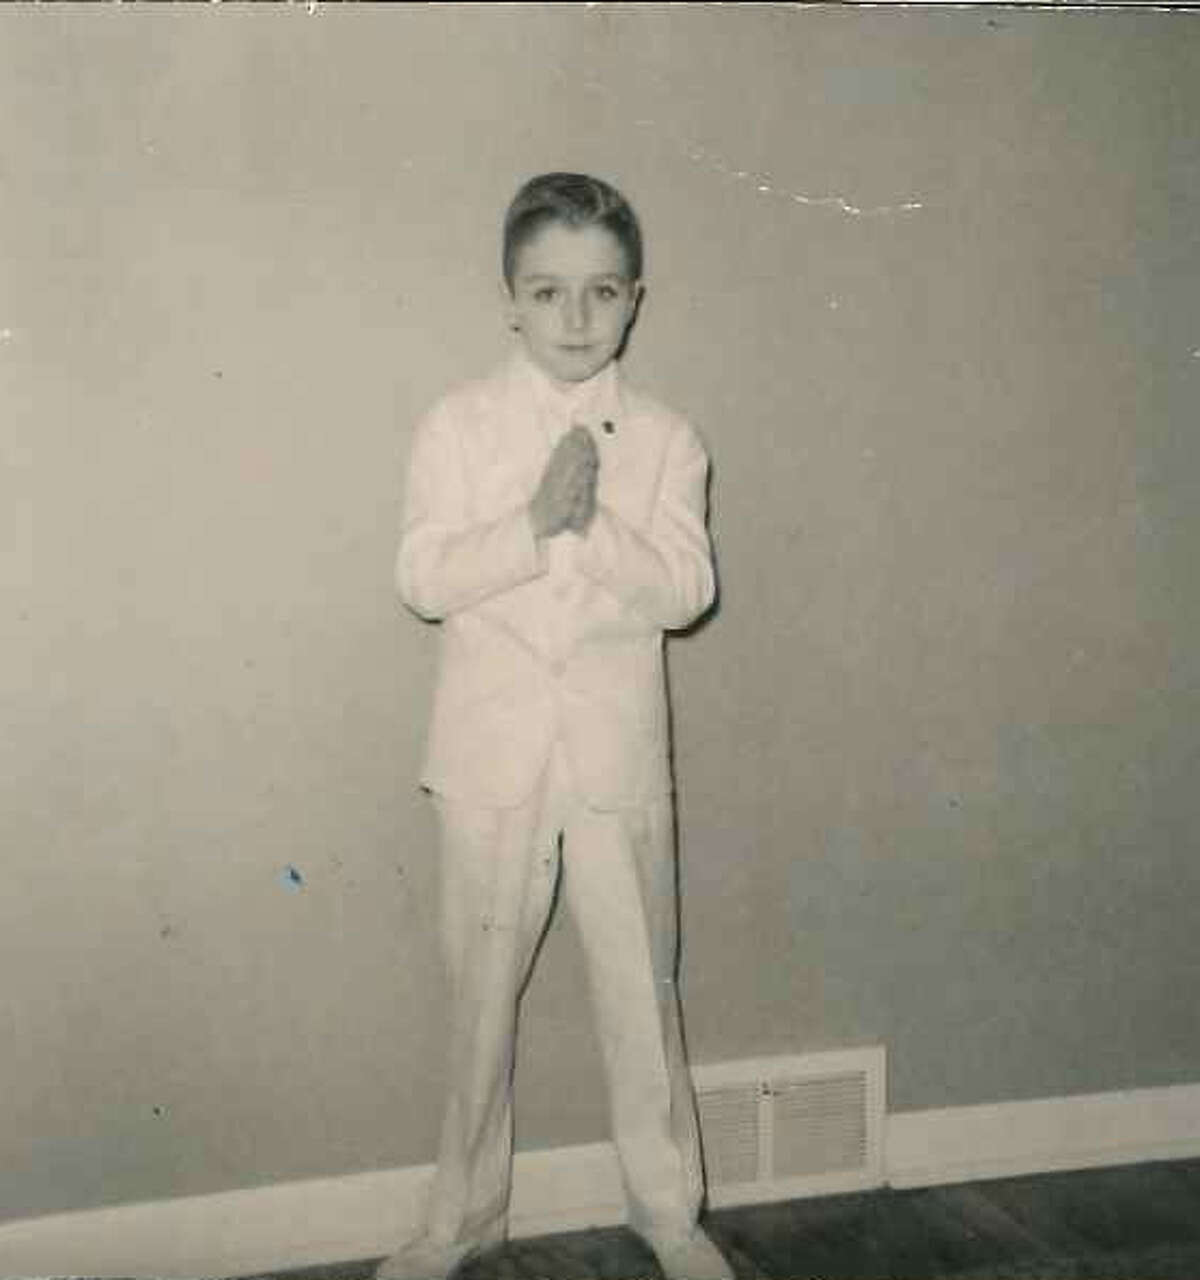 Joe Wenke's first communion in Philadelphia, where he was the oldest of 11 children in a strict Catholic household. The Stamford writer's latest book,